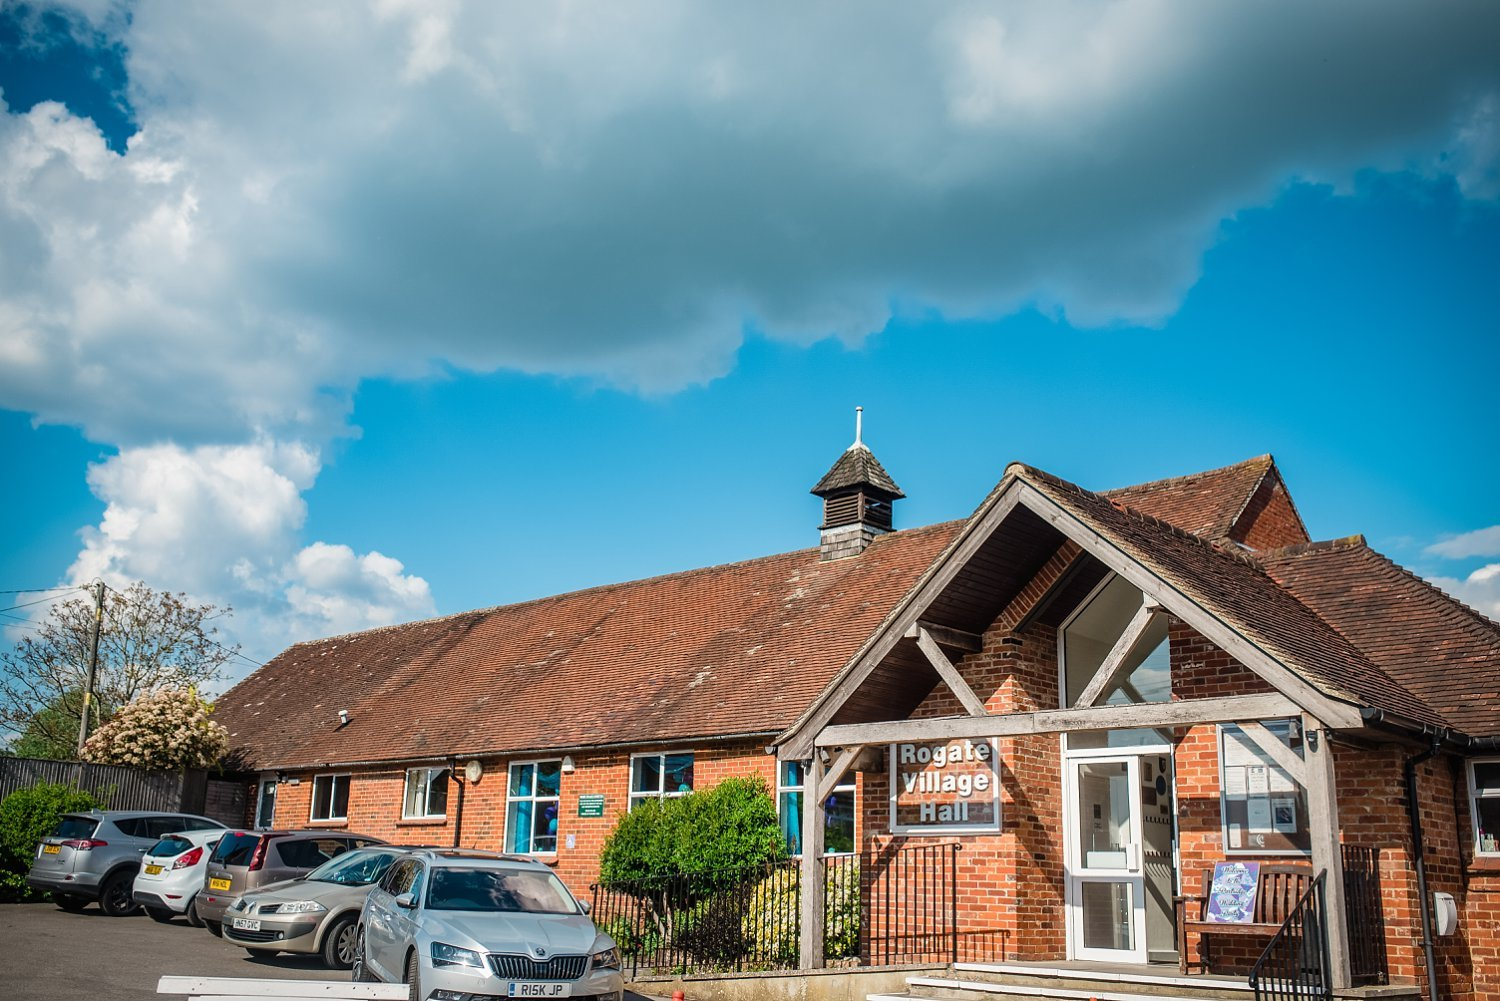 Rogate Village Hall - Wedding reception was taken place there - wedding photography in Hampshire